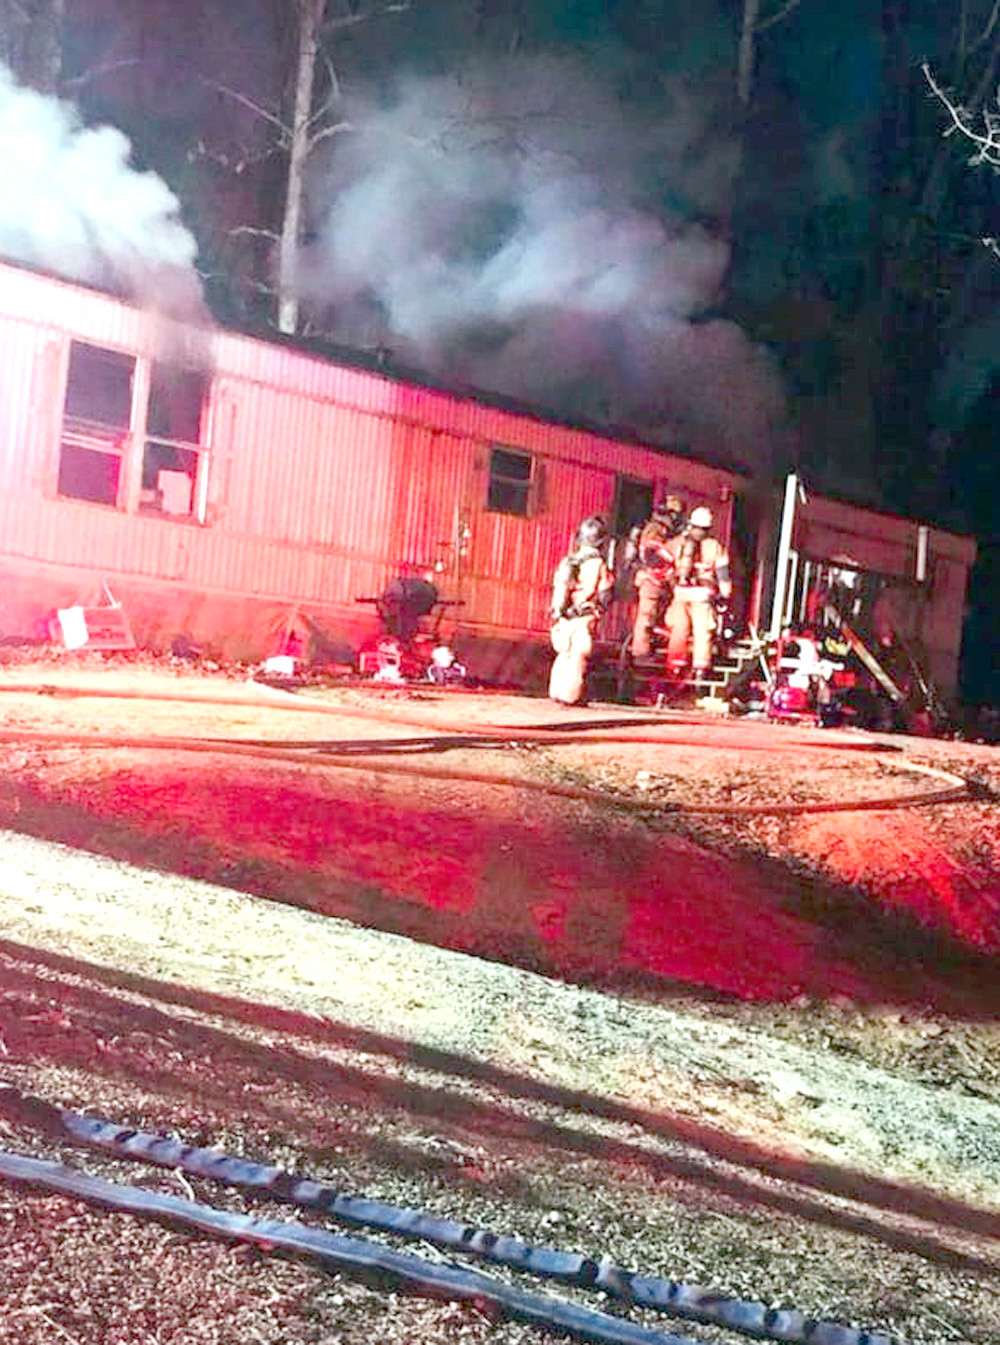 FIREFIGHTERS WORK at a fire at 182 Van Davis Road early Thursday. According to BCFR Chief Shawn Fairbanks, the fire started in the hallway and appeared to be electrical in nature. Fairbanks said that early investigation found that the house was a total loss from the fire.